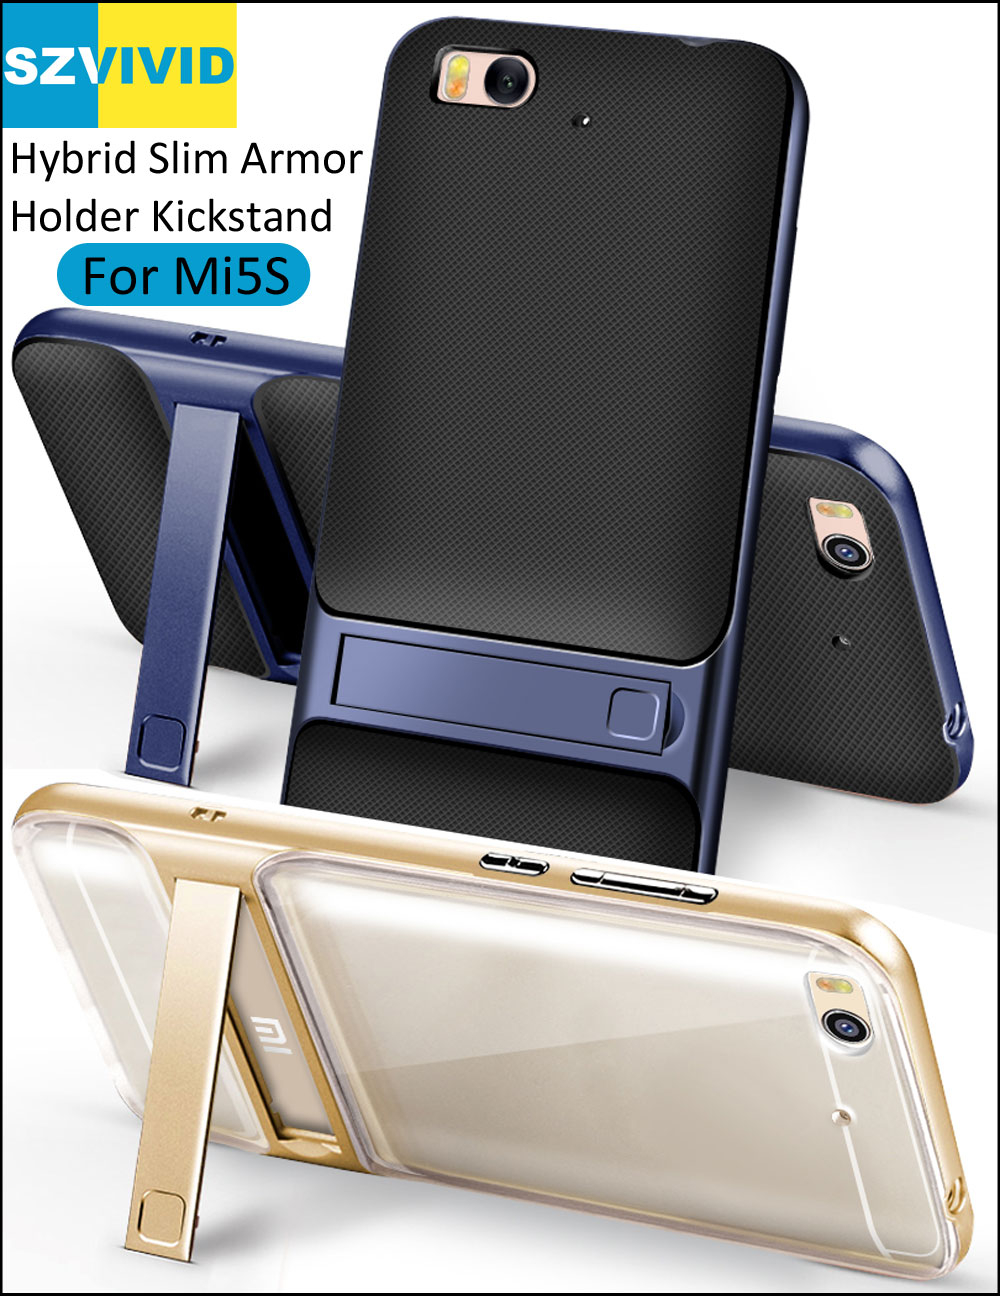 Stand Holder Kickstand Case for Xiaomi Mi5S Hybrid Slim Armor Protector Cover Mi 5S